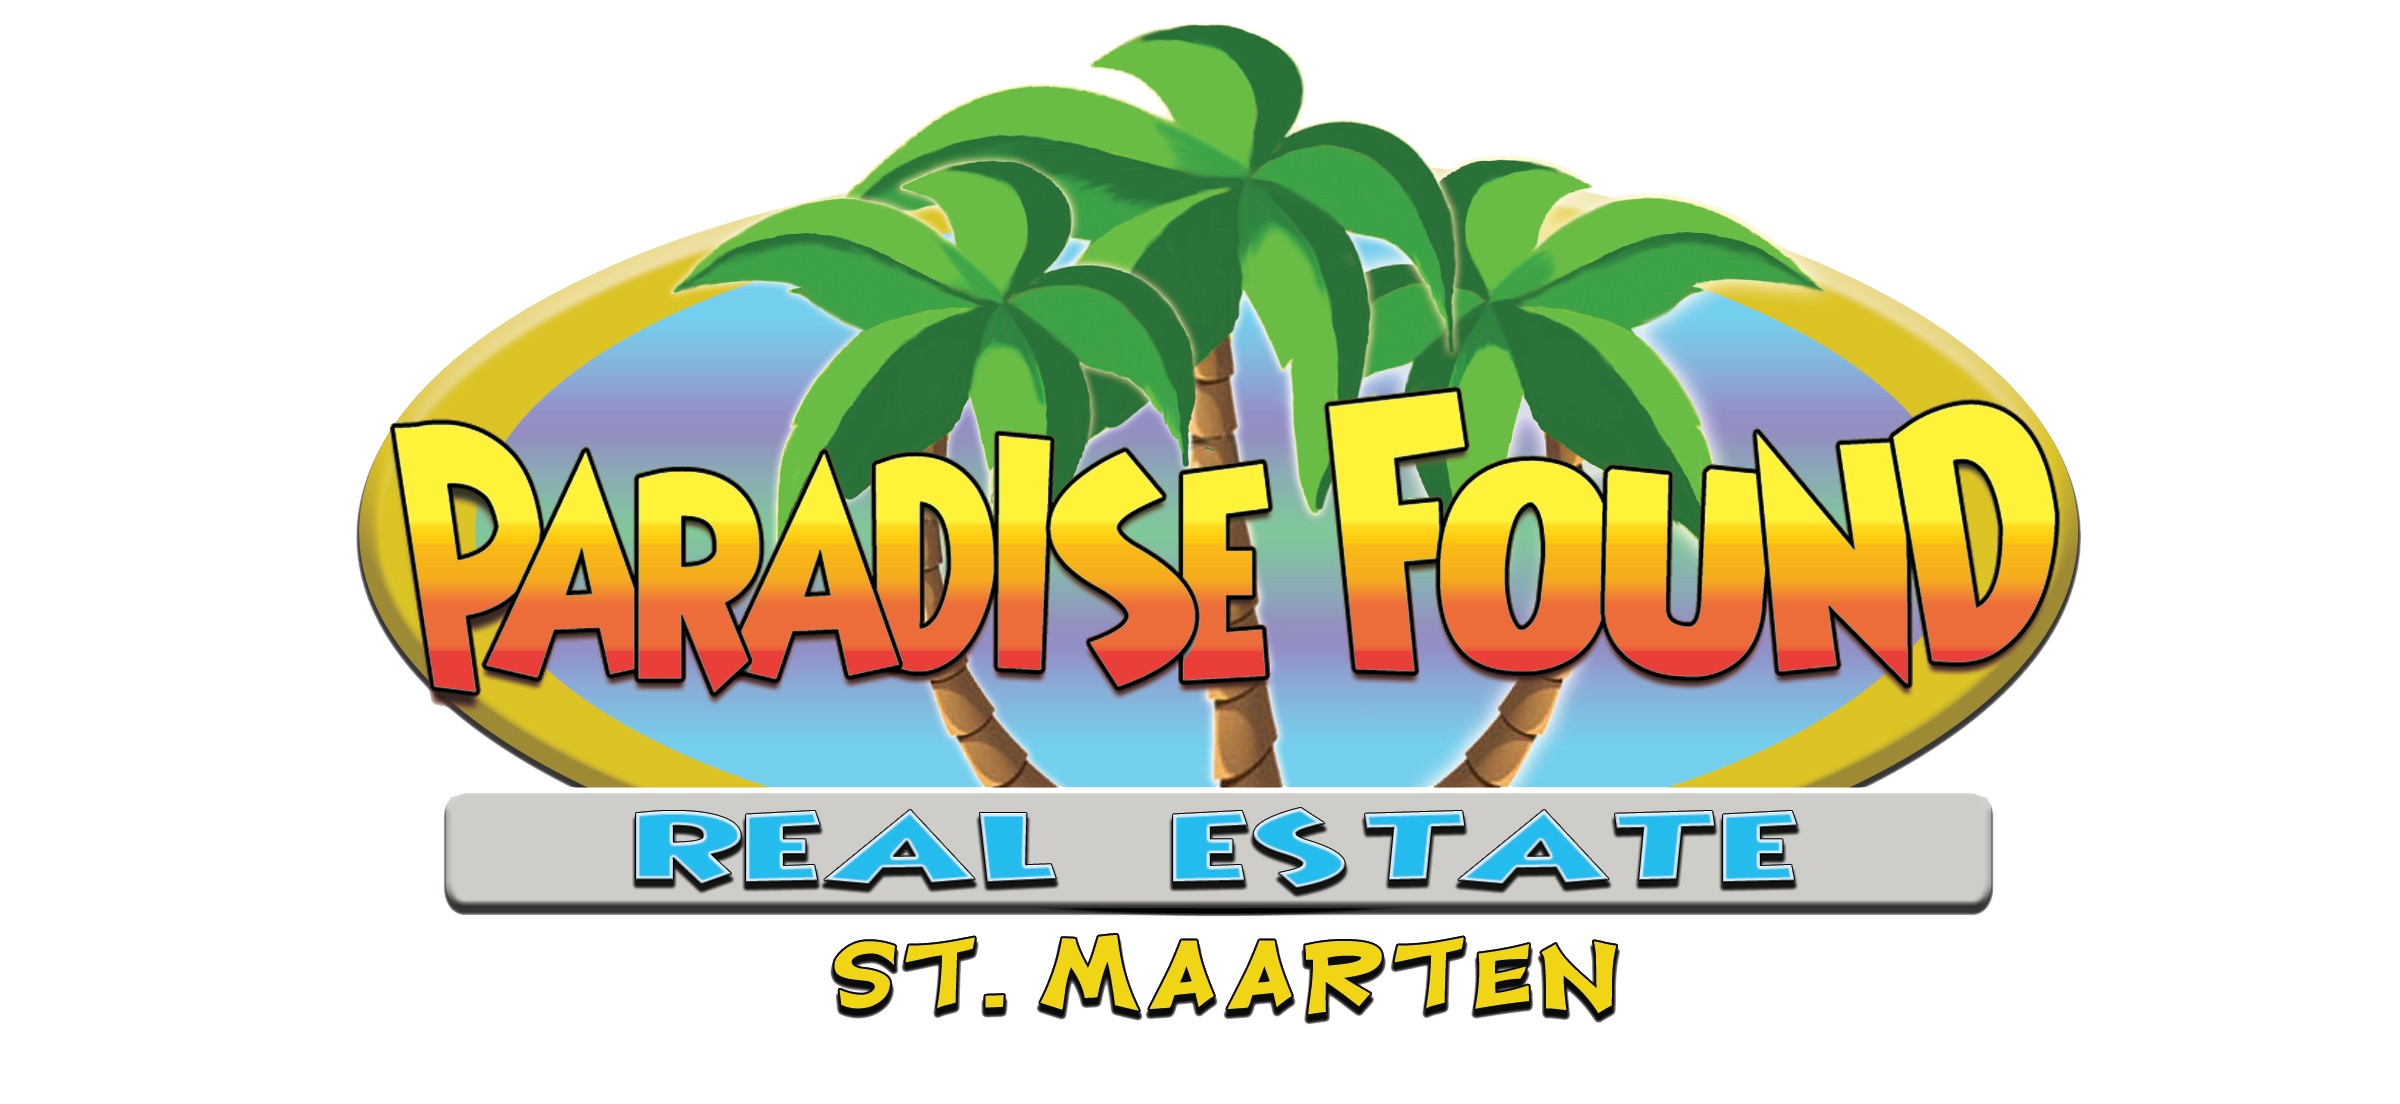 Real Estate St. Maarten / Caribbean by Paradise Found SXM - Jimmy Buffett PNG